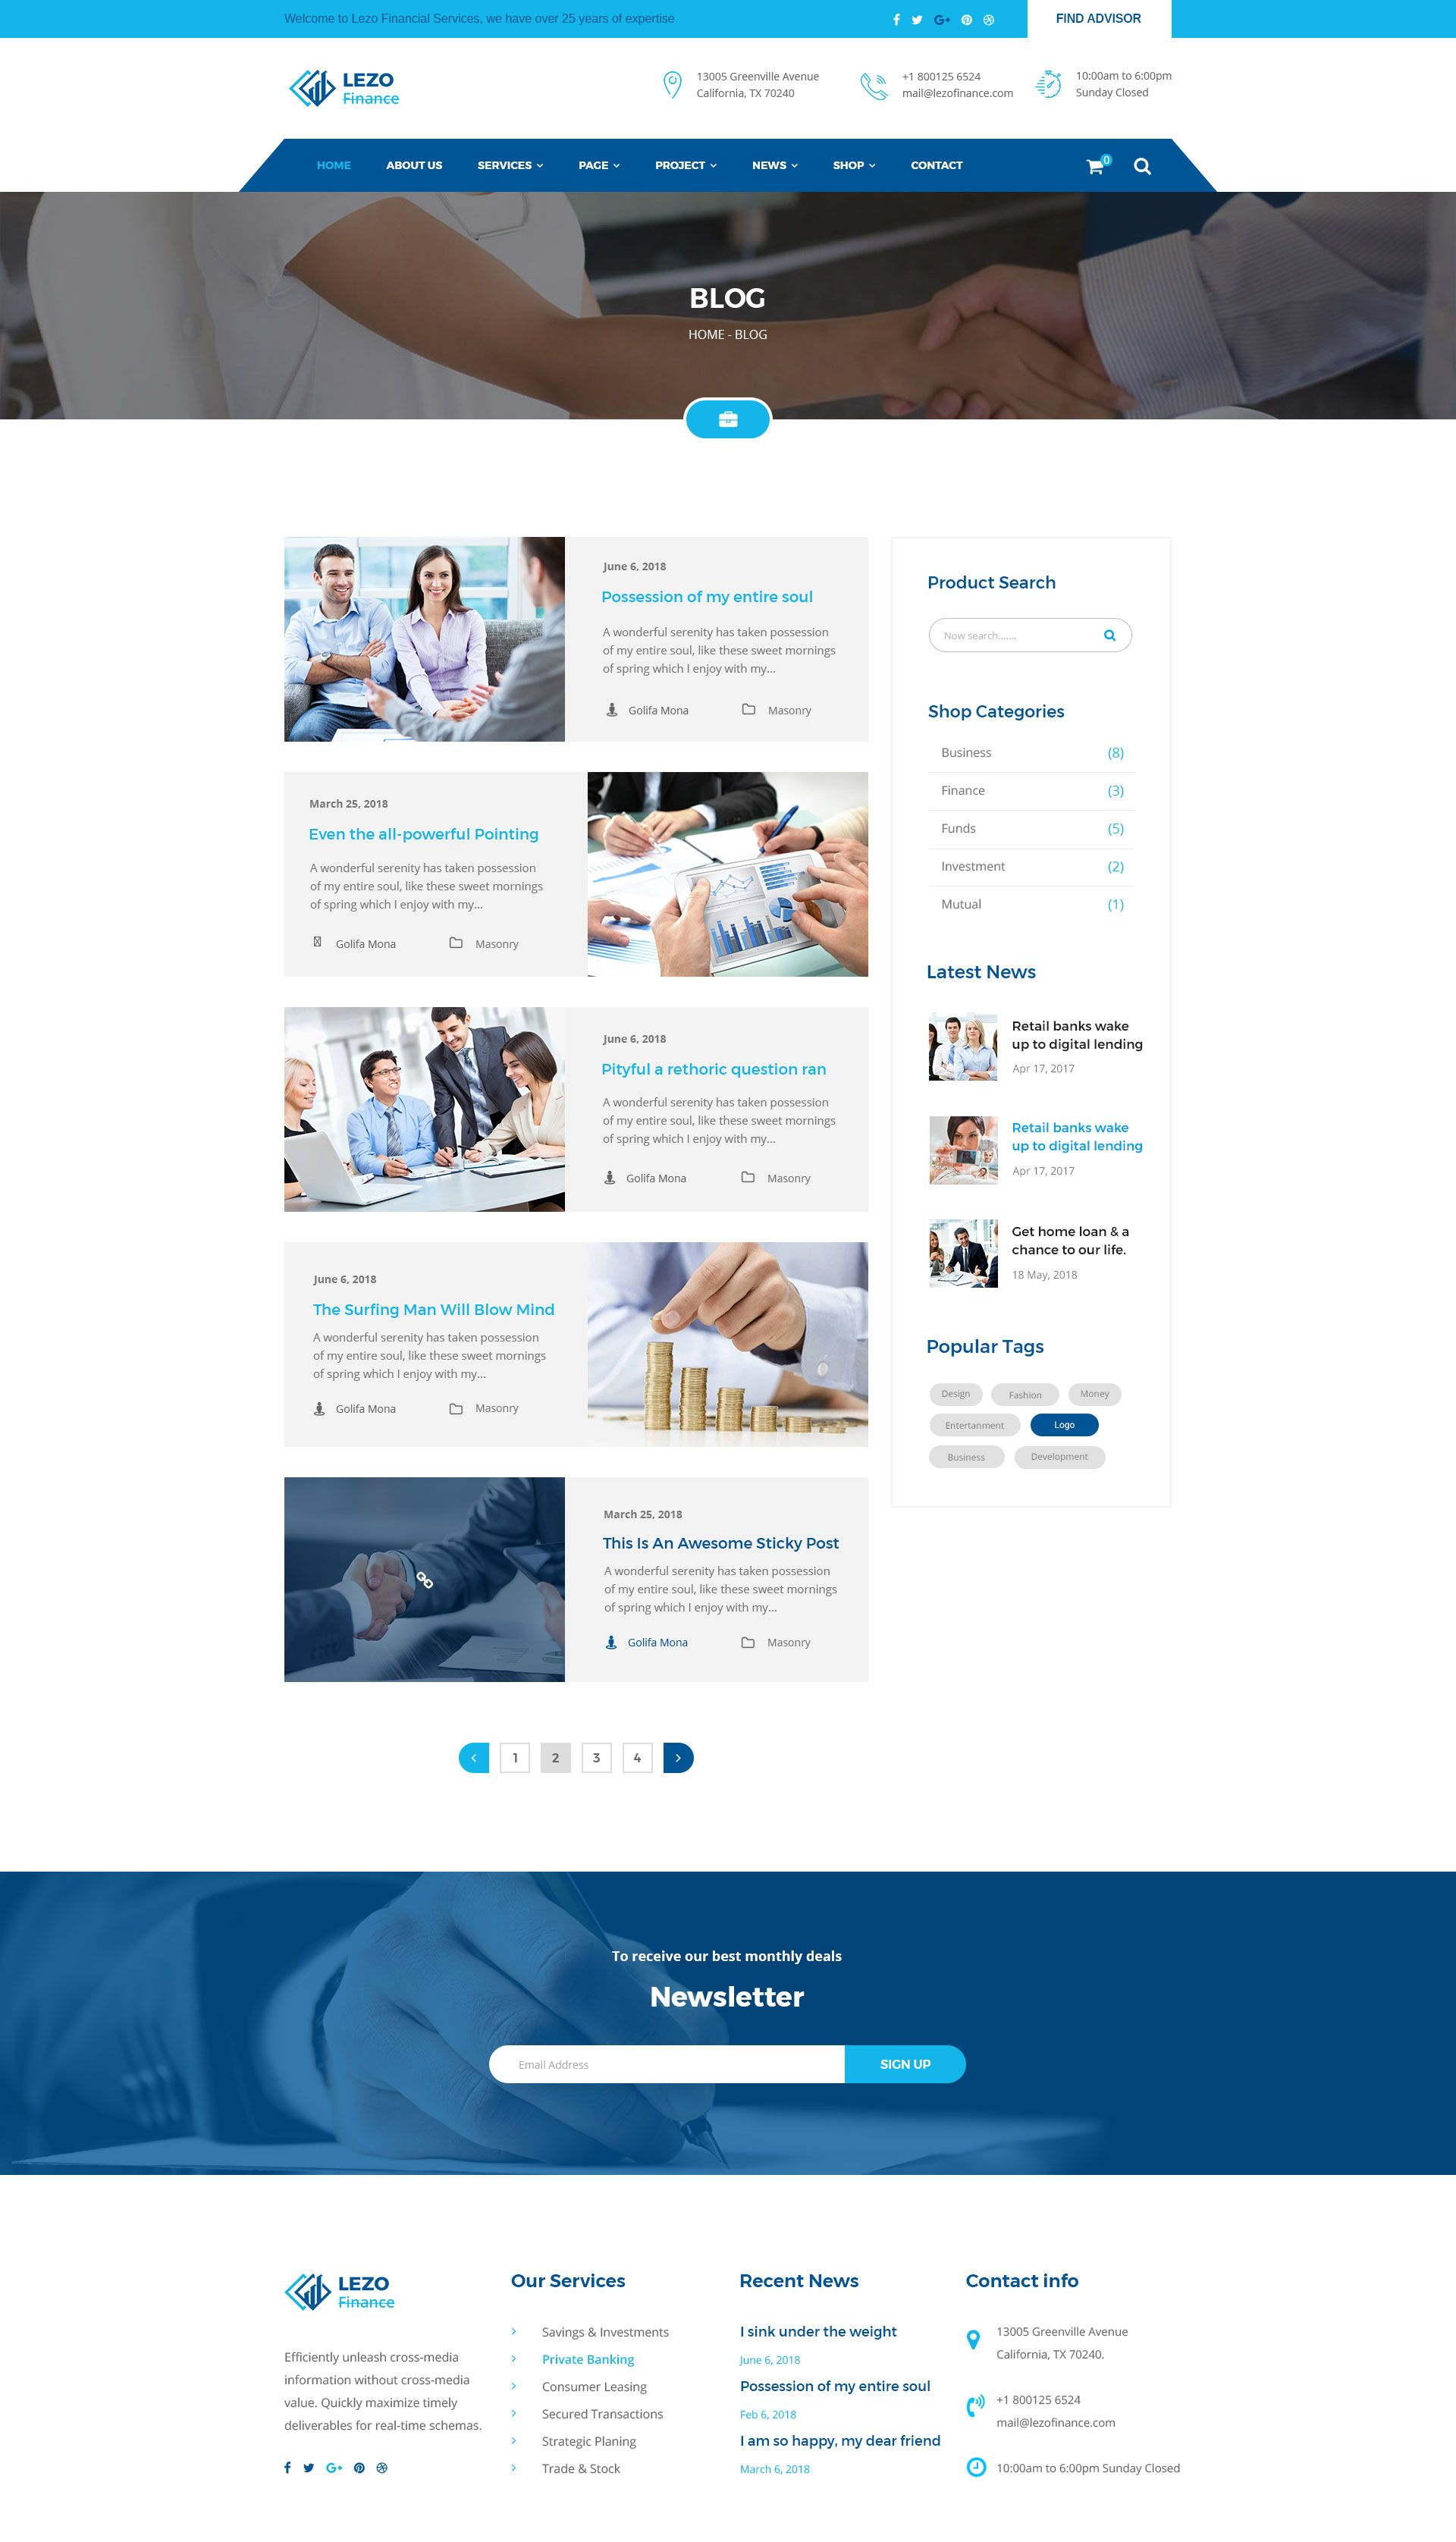 Lezo Business Finance Consulting Psd Template Amp Business Lezo Finance Business Finance Finance Psd Templates